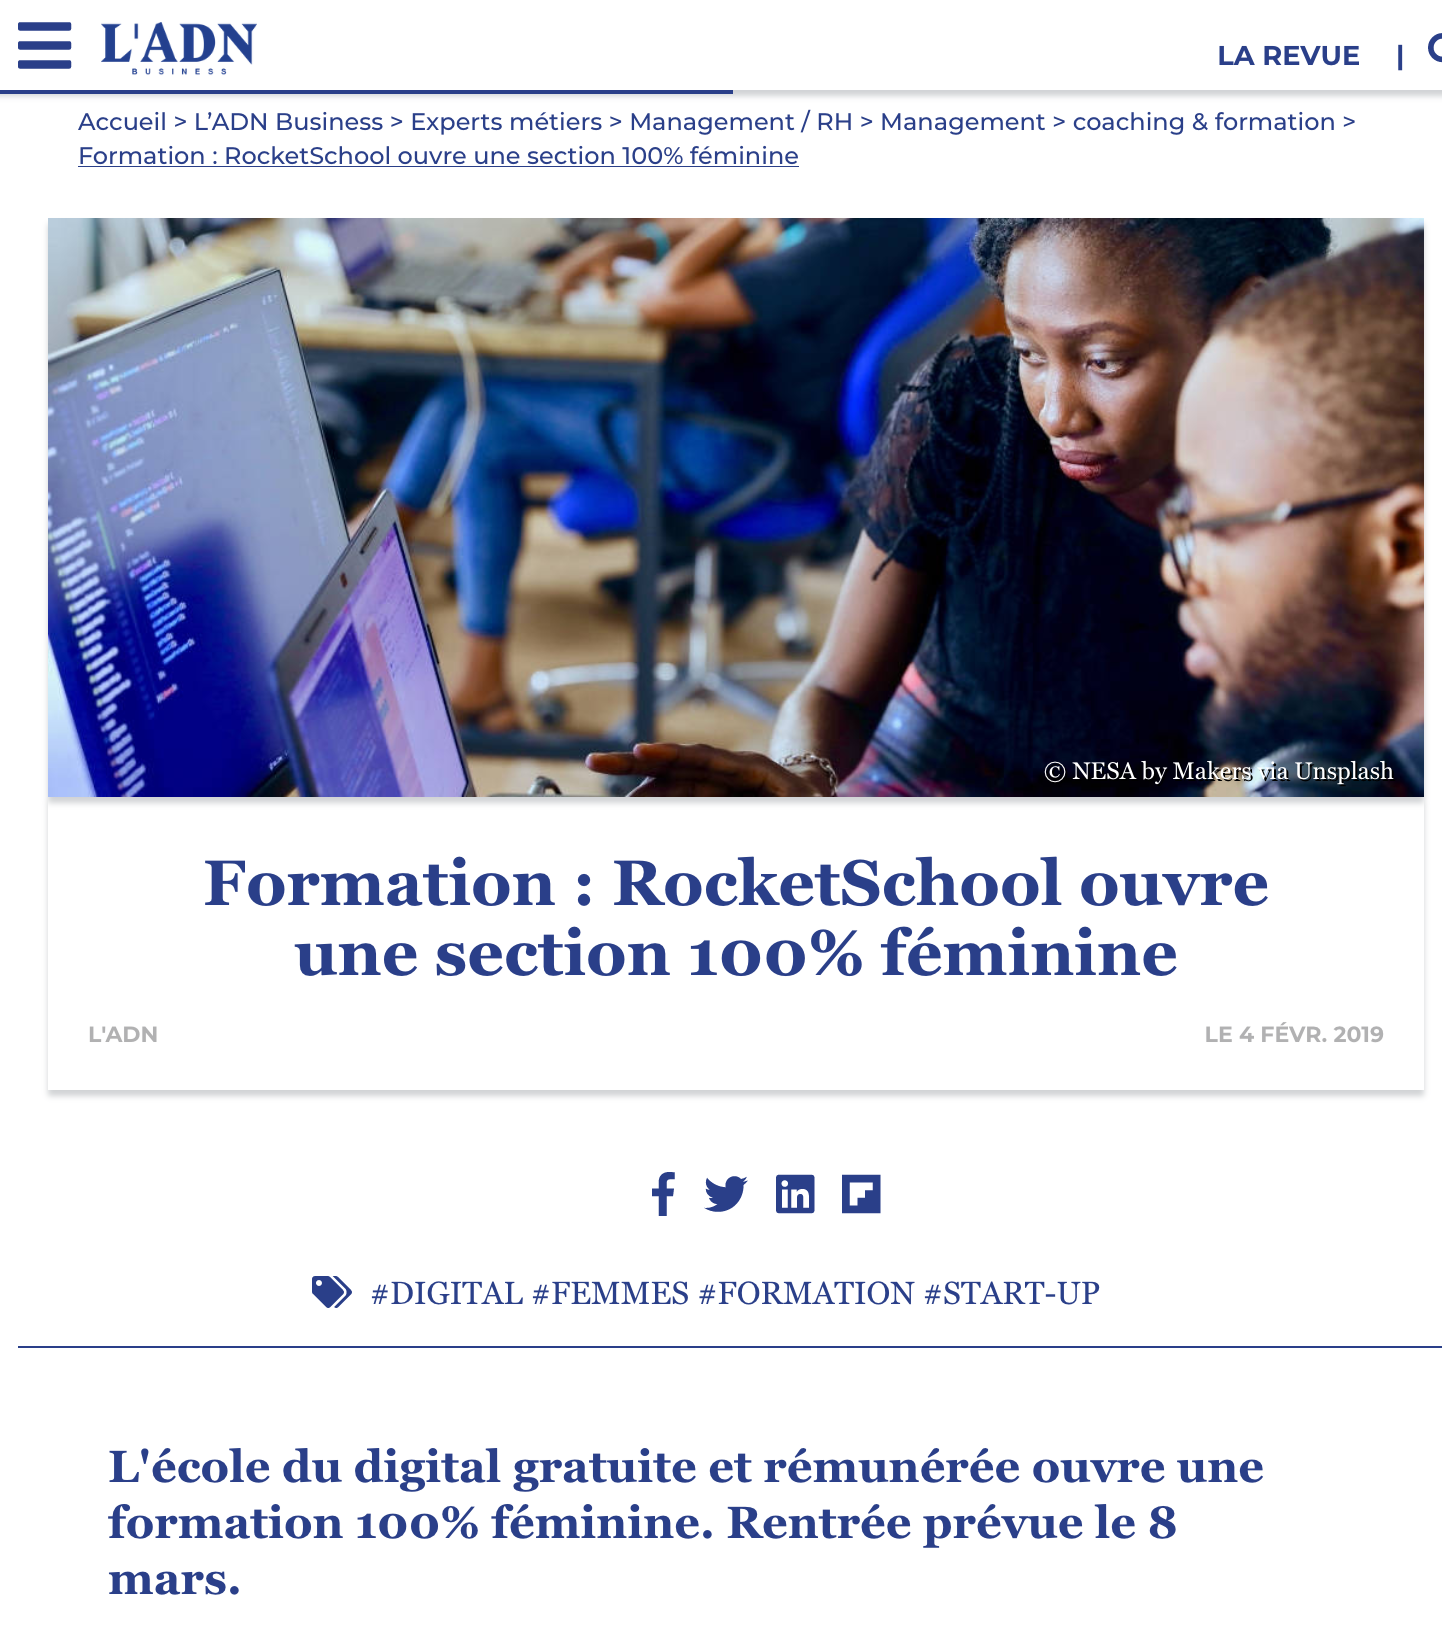 Formation : RocketSchool ouvre une section 100% féminine